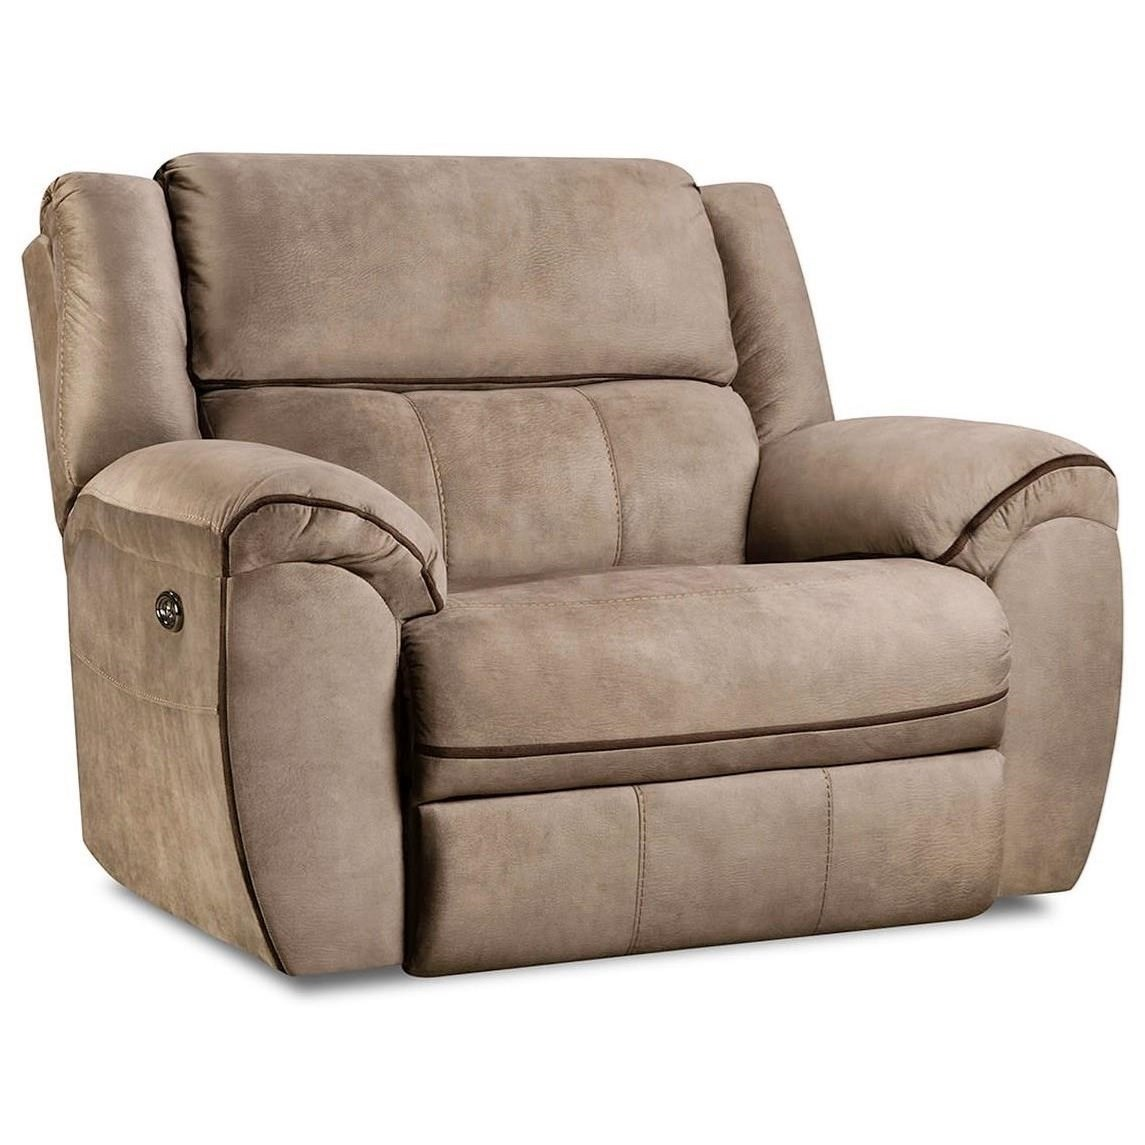 50436BR Cuddler Recliner by United Furniture Industries at Value City Furniture